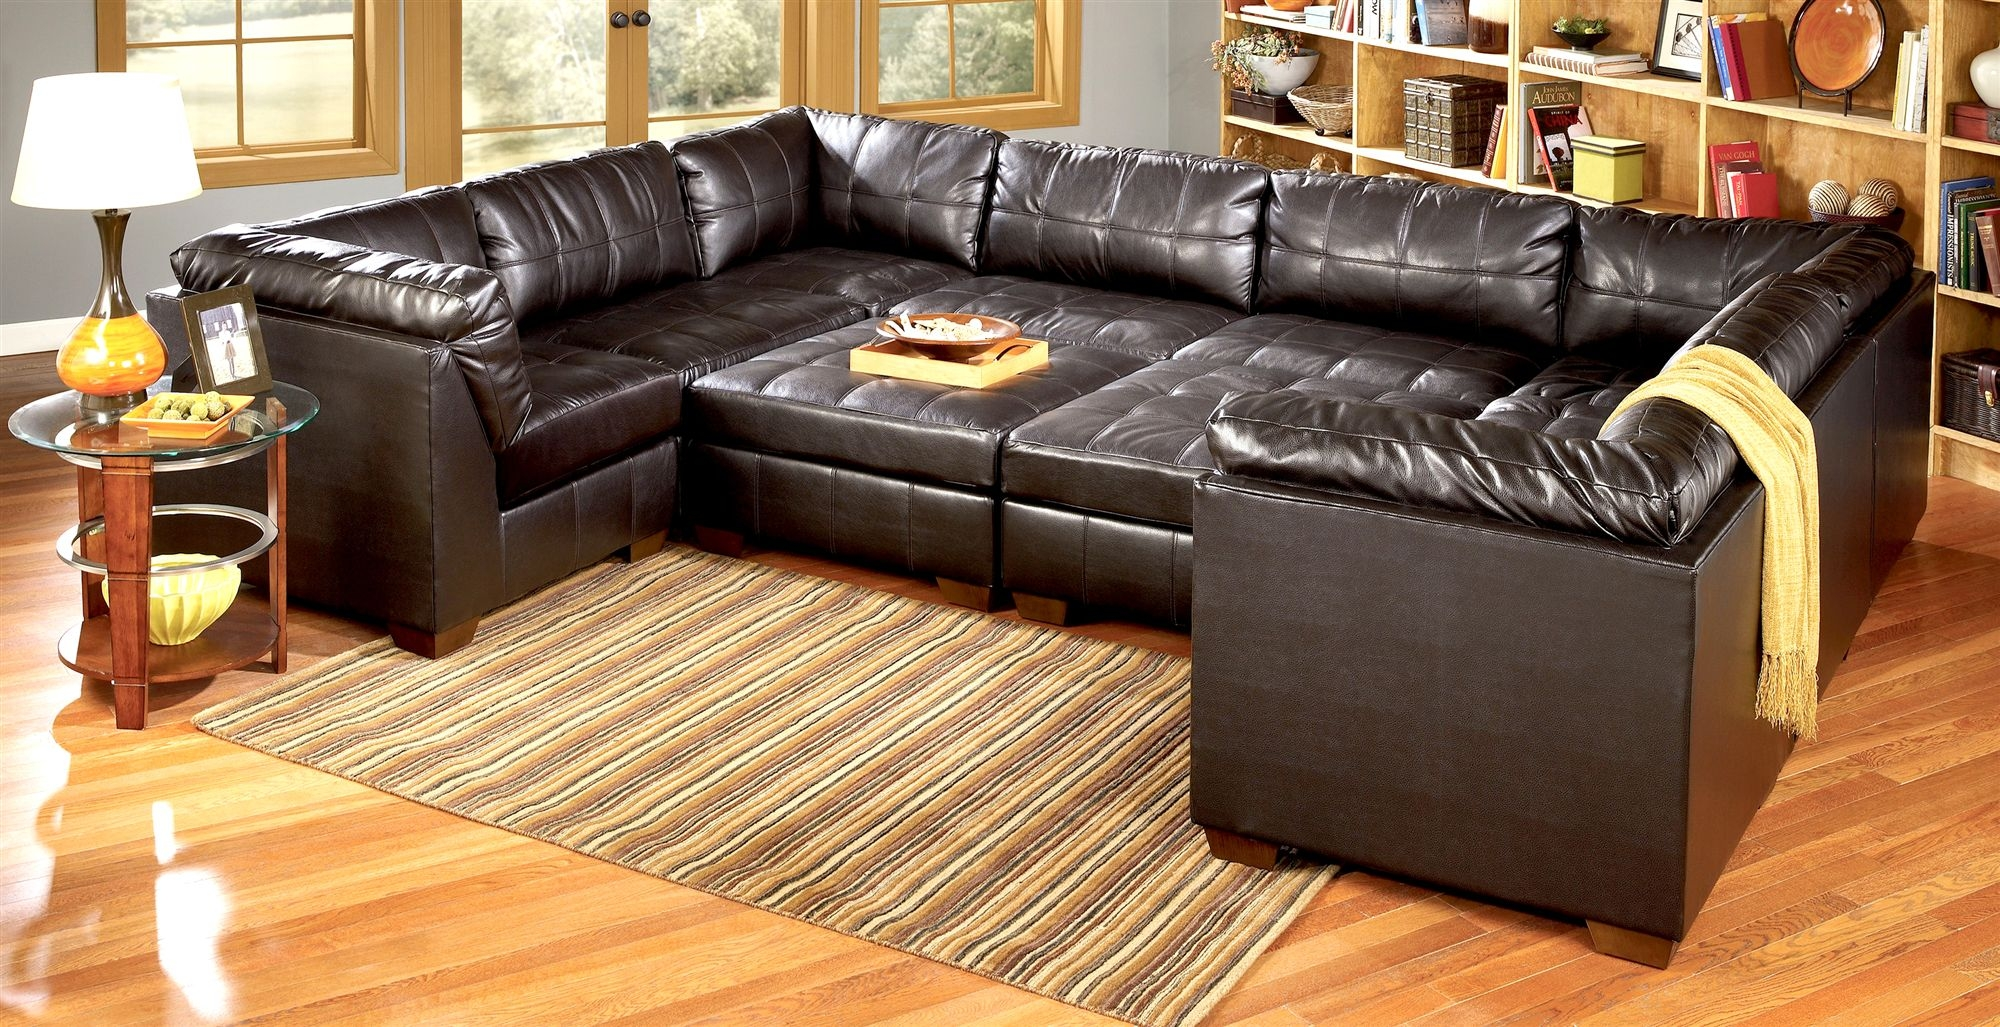 10 Piece Sectional Sofa Cleanupflorida Regarding 10 Piece Sectional Sofa (#3 of 12)